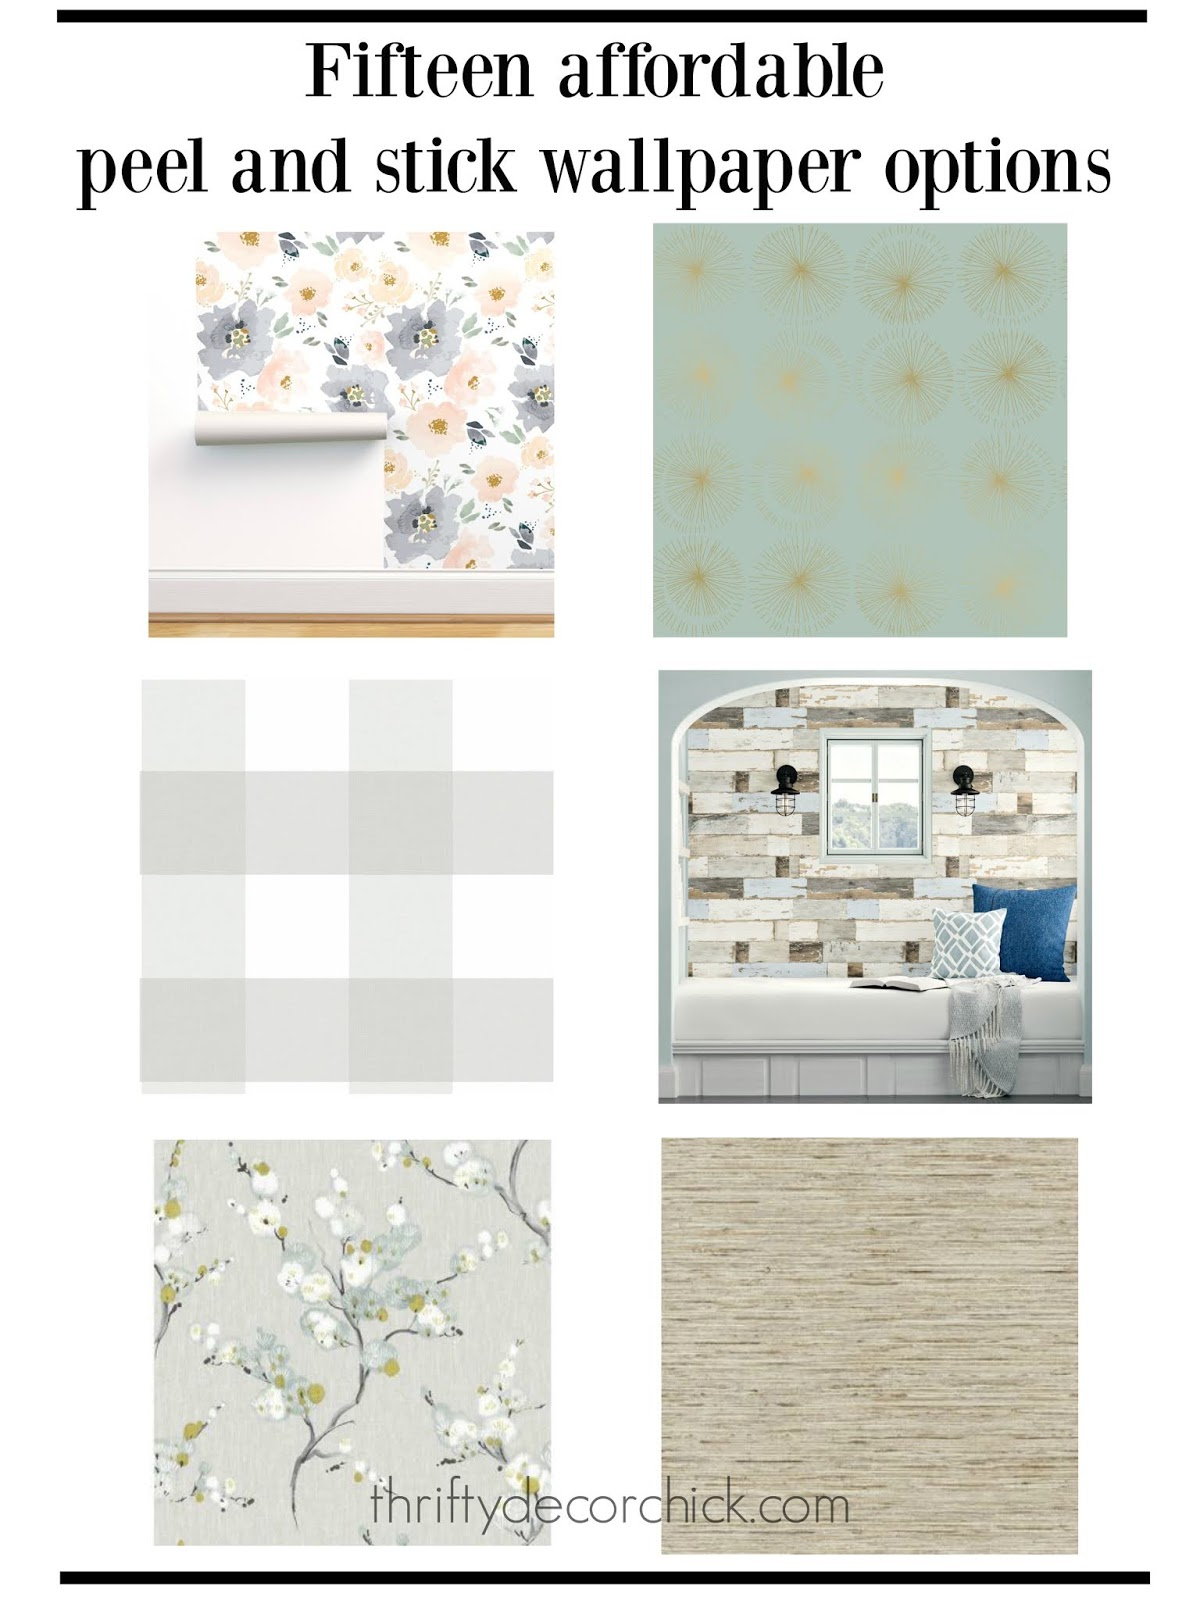 Fifteen affordable peel and stick wallpaper options